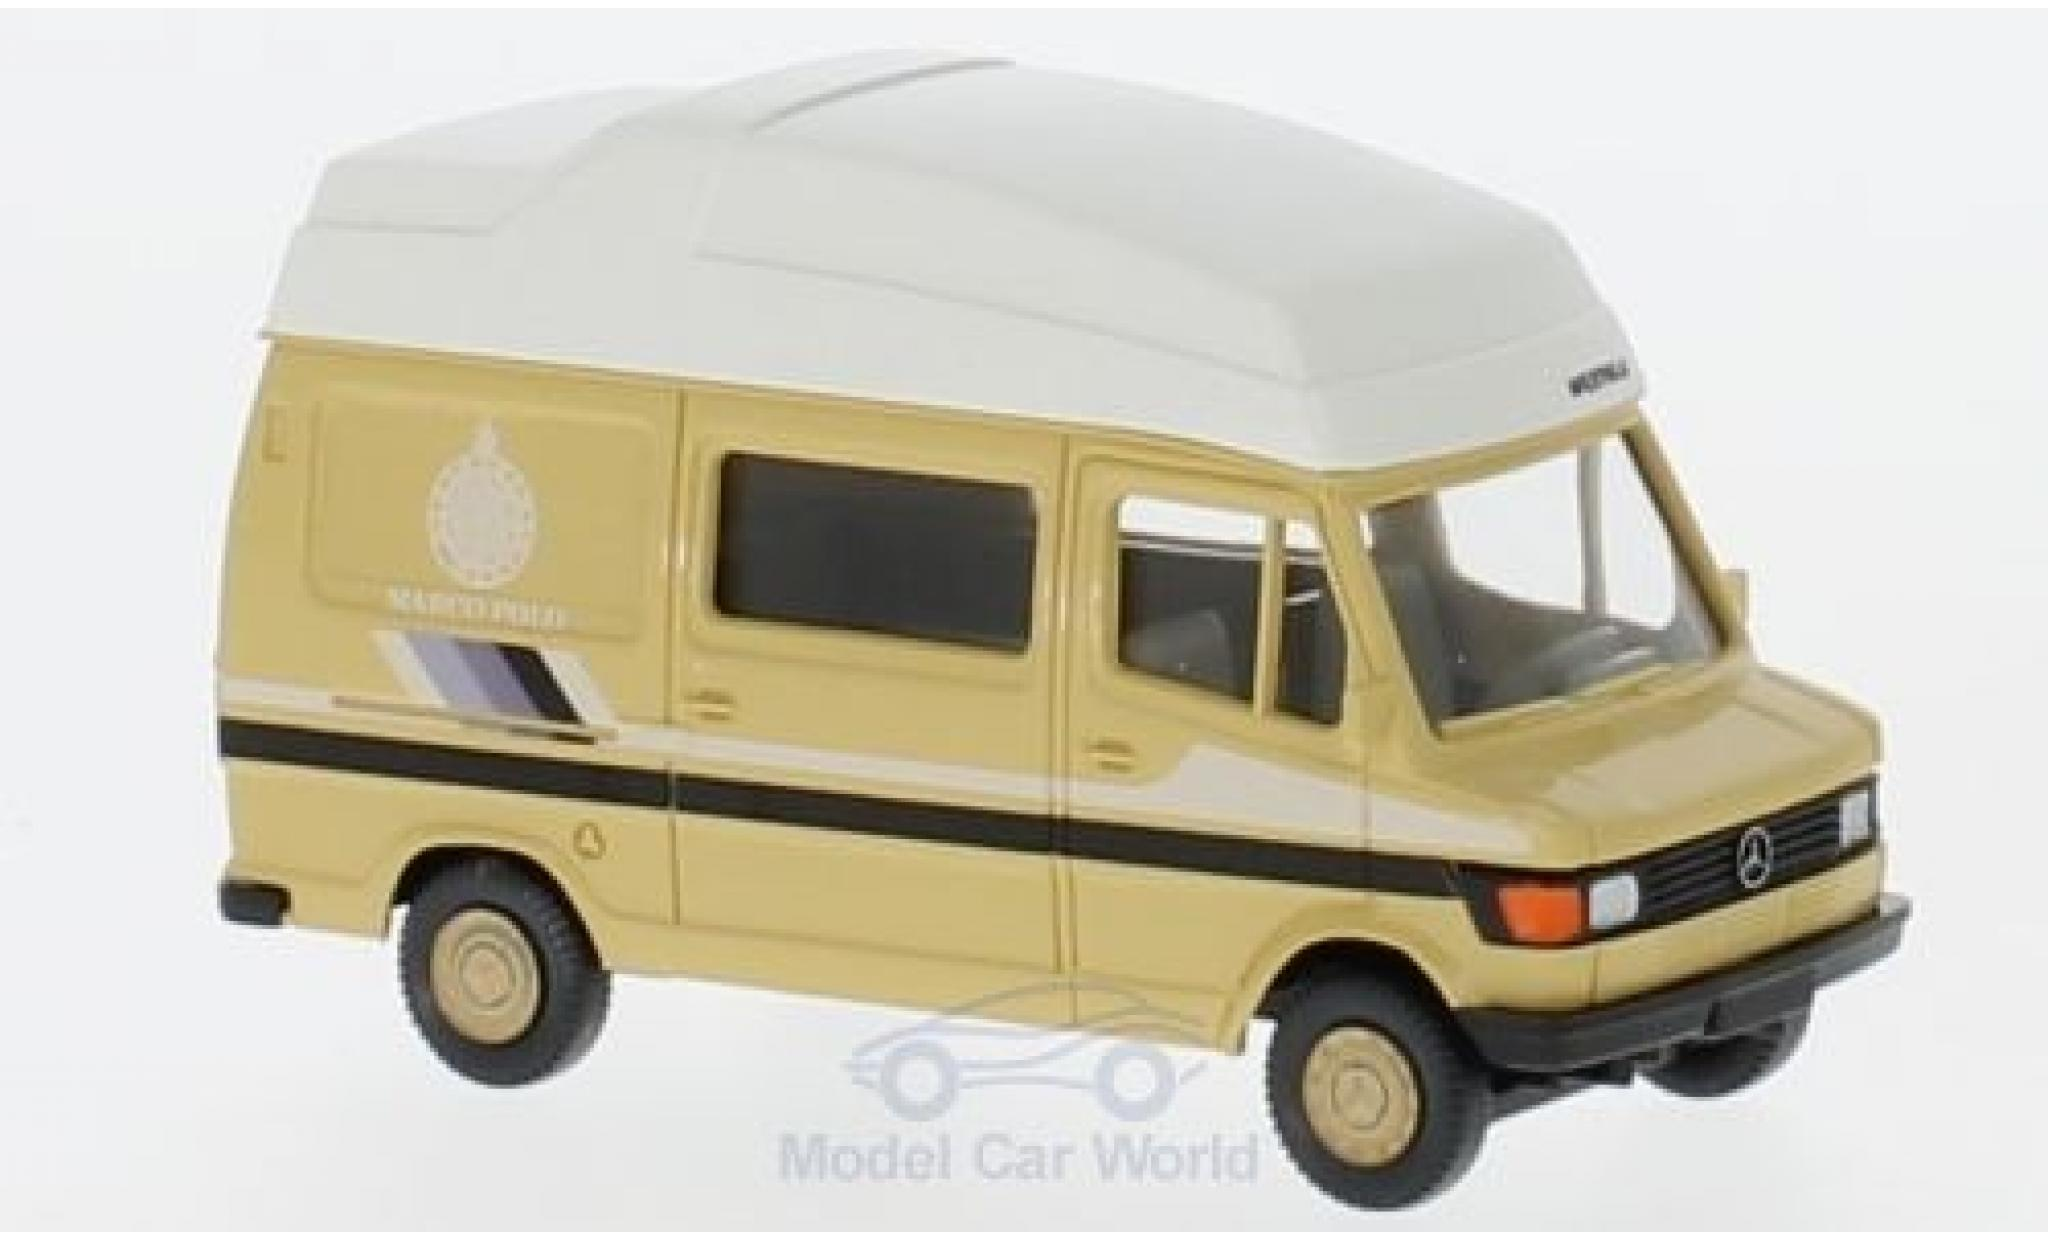 Mercedes 207 1/87 Wiking D Marco Polo Wohnmobil